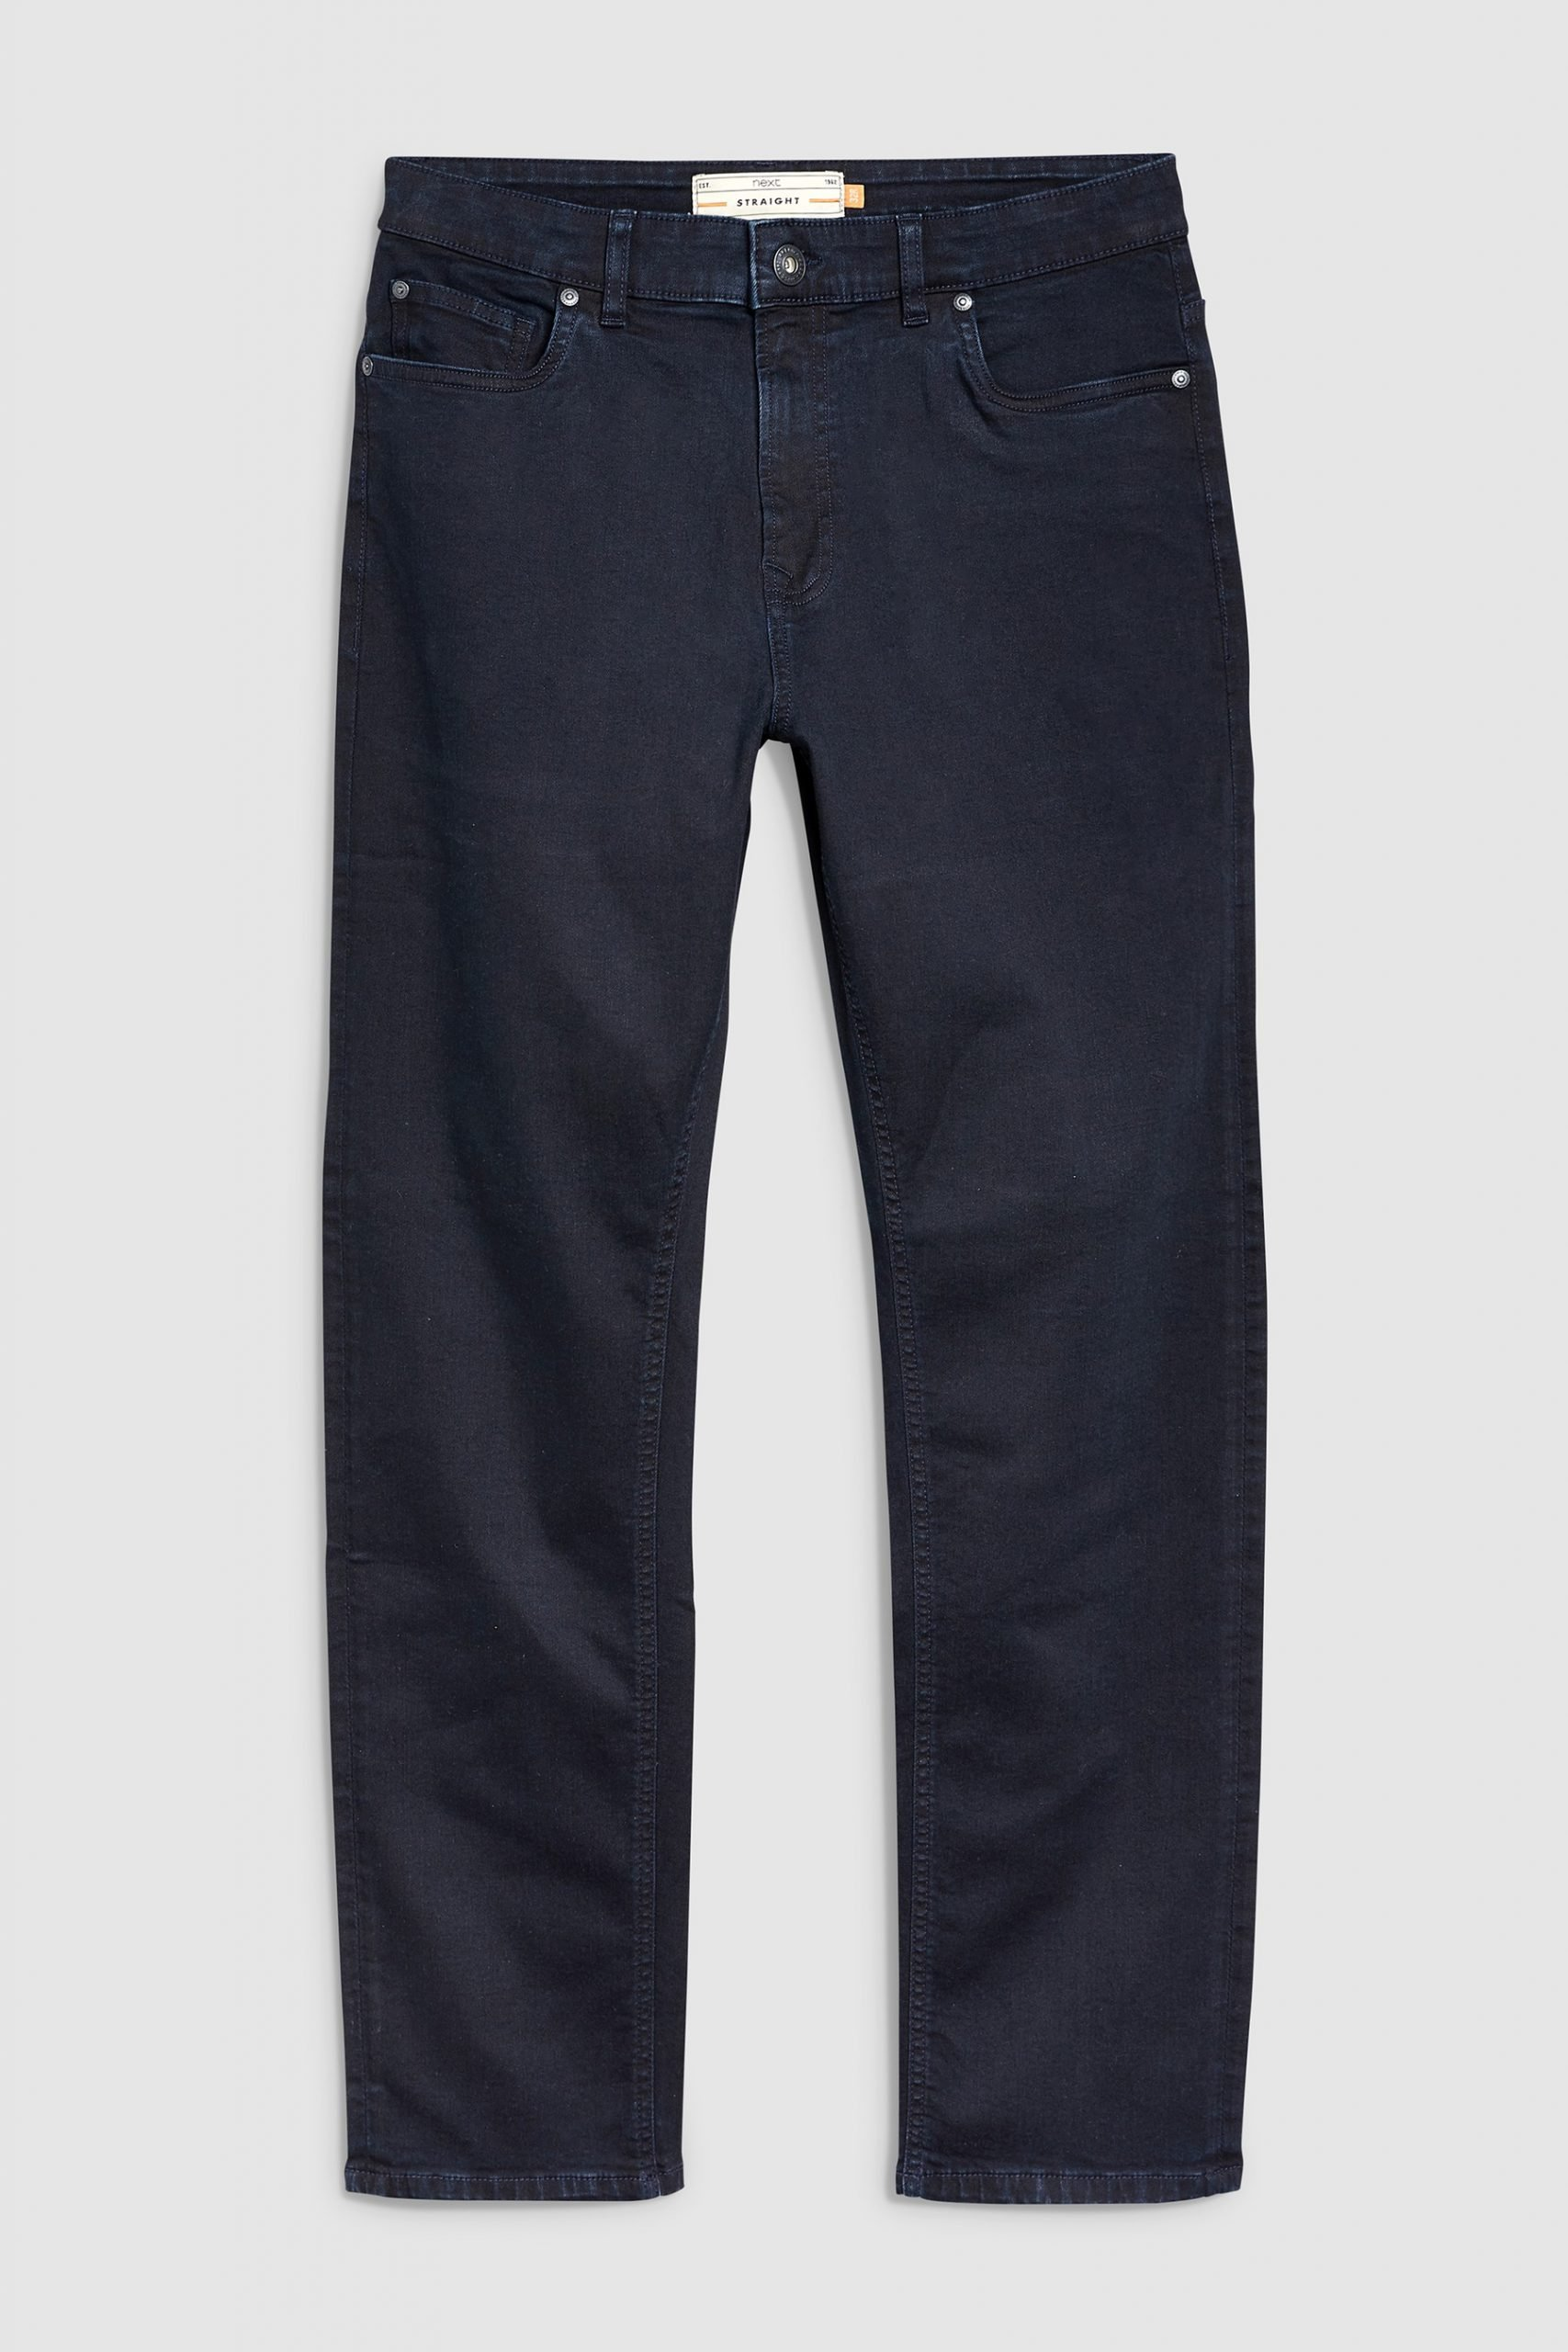 Next Straight Fit (Streched)